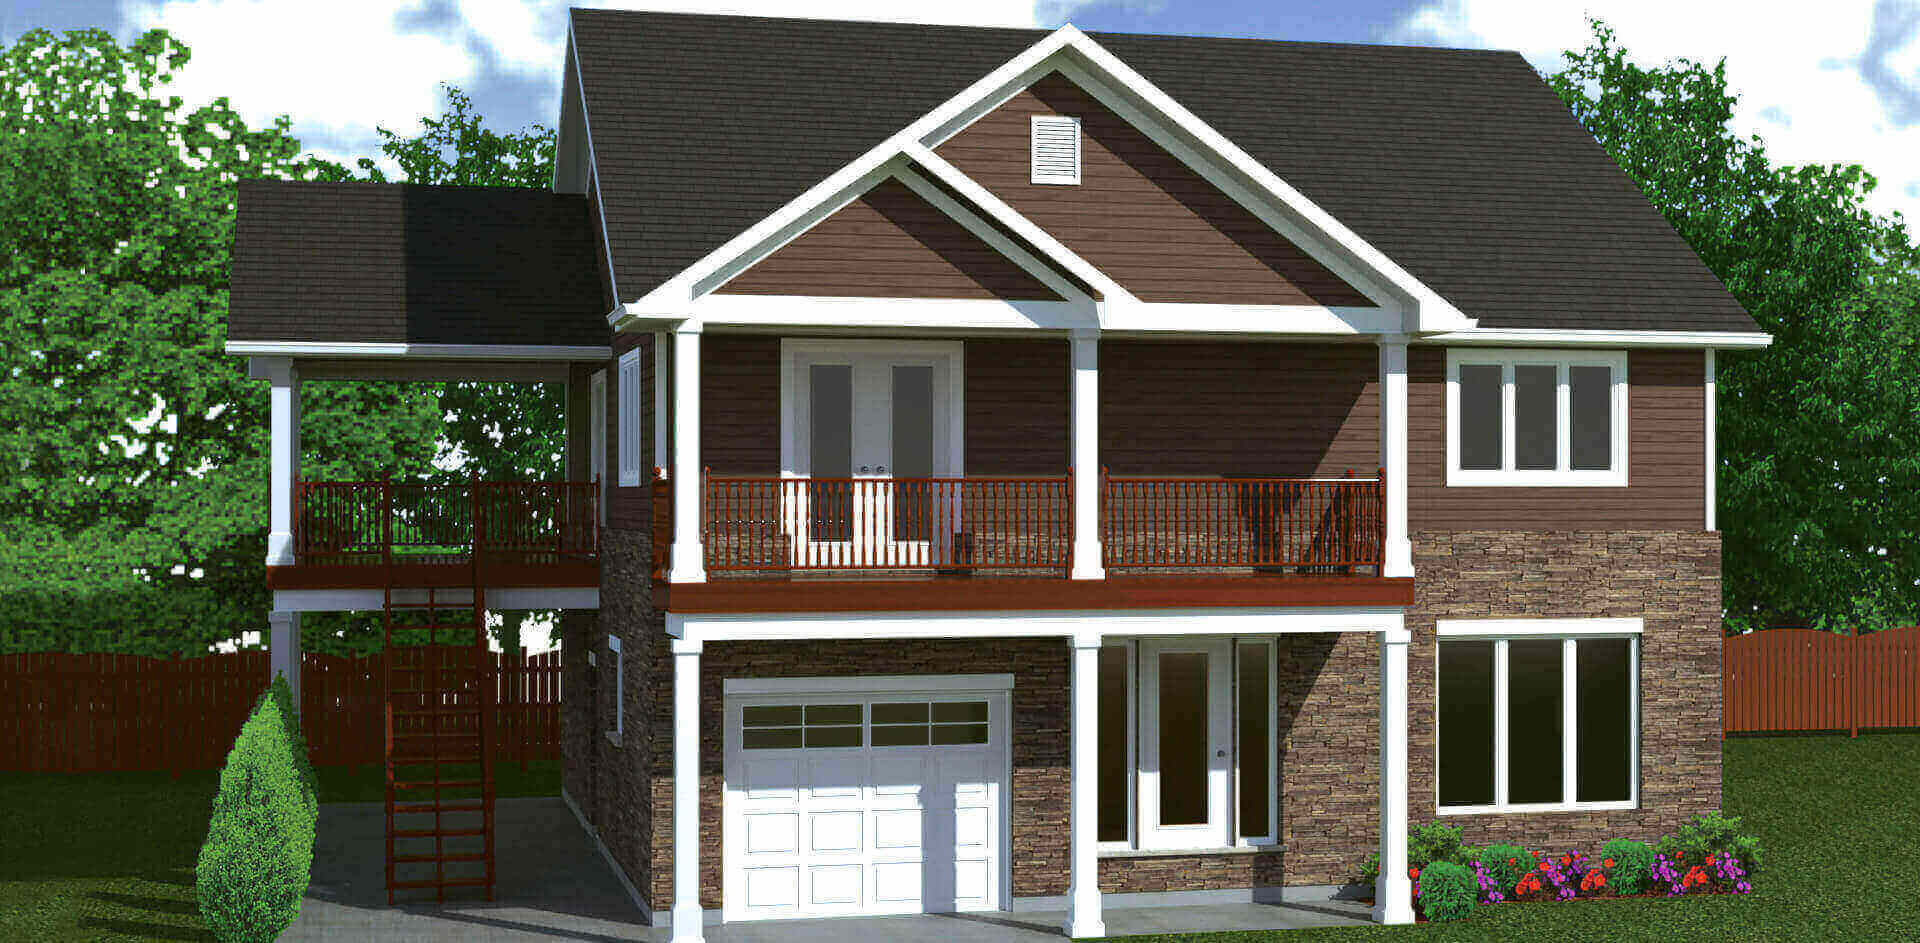 2296 sq.ft. timber mart house 3 bed 1.5 bath exterior render